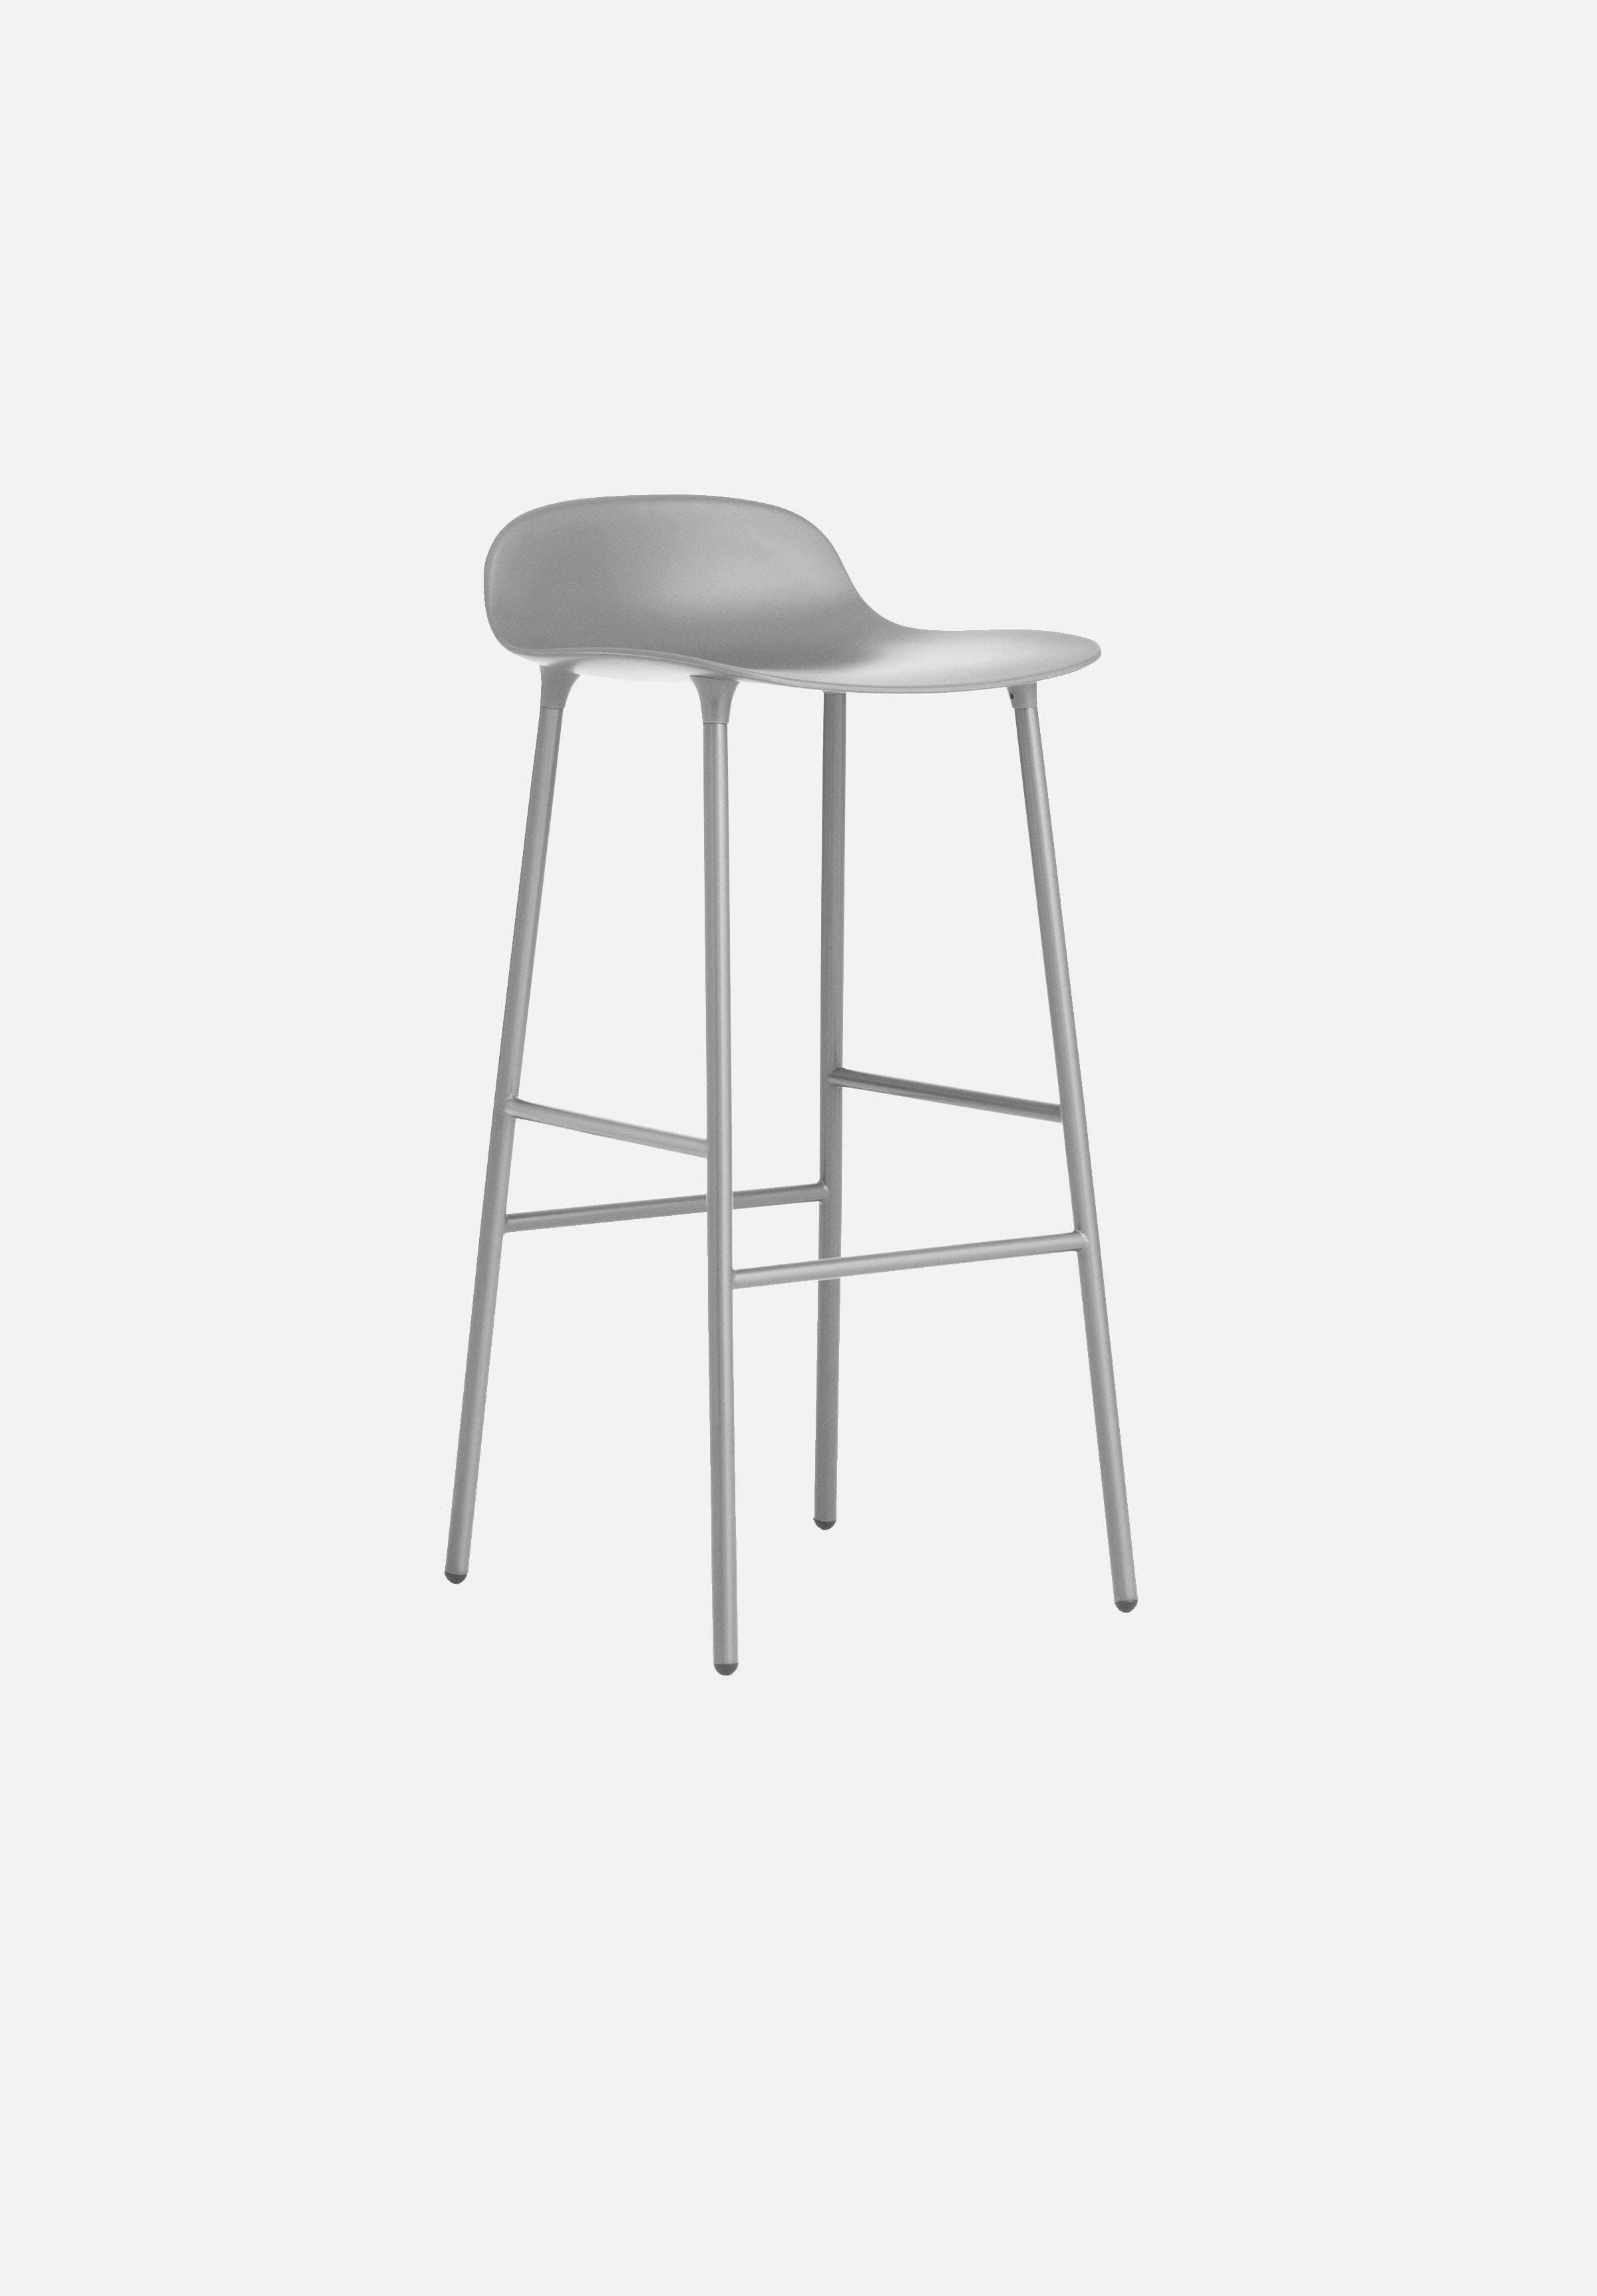 Form Stool — 75cm-Simon Legald-Normann Copenhagen-Grey-Lacquered Steel-Average-canada-design-store-danish-denmark-furniture-interior